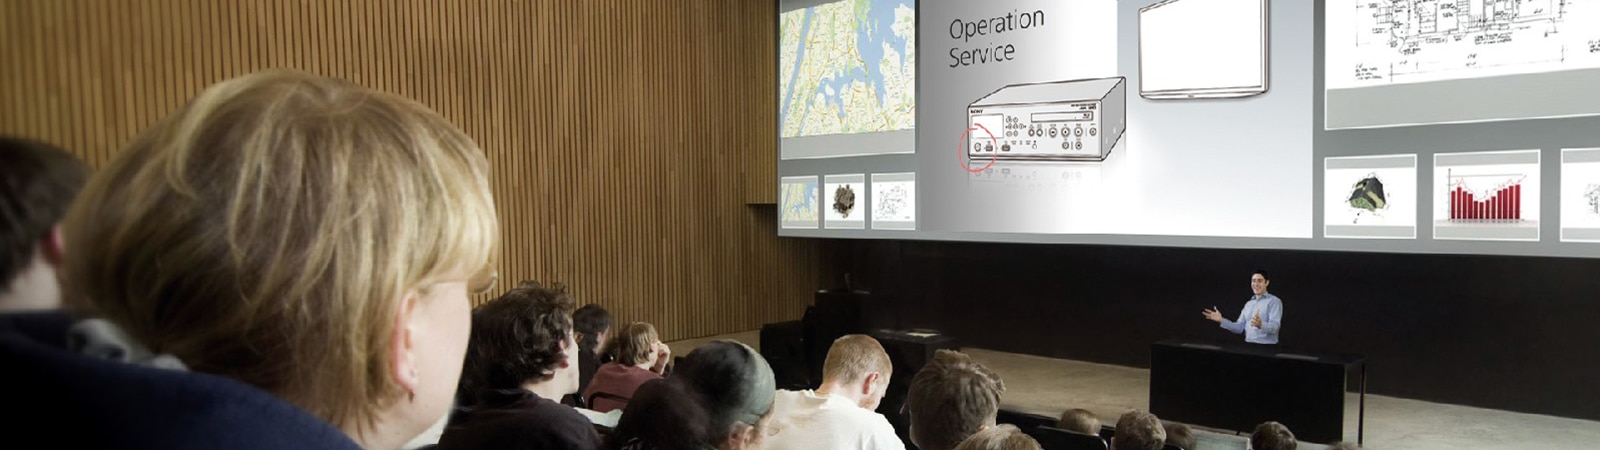 A presenter introducing 'Operation Service' to audience in a conference hall